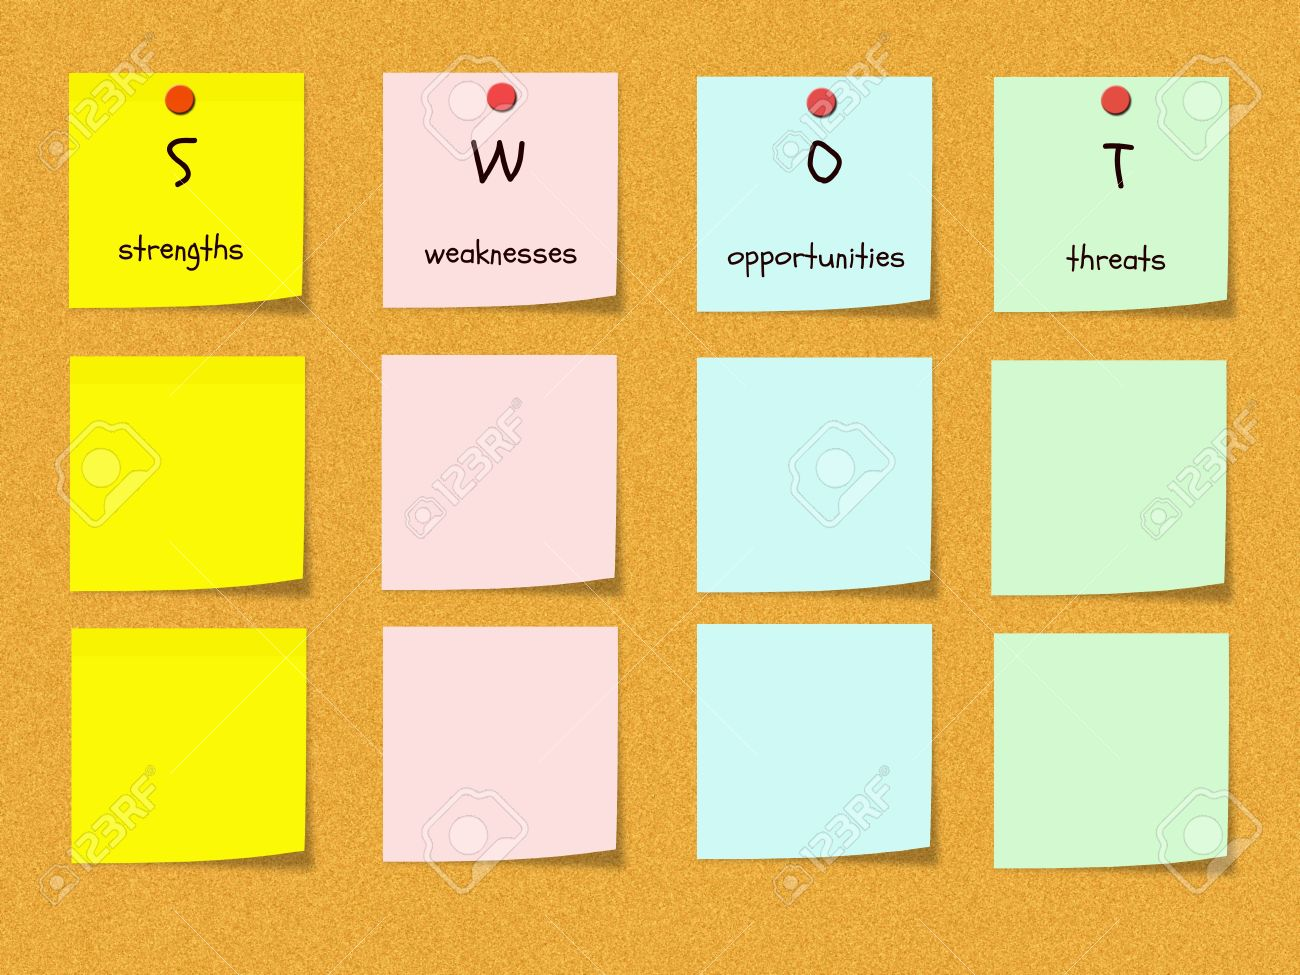 the acronym swot strengths weaknesses opportunities threats stock photo the acronym swot strengths weaknesses opportunities threats on colorful sticky notes on a cork bulletin board red push pins